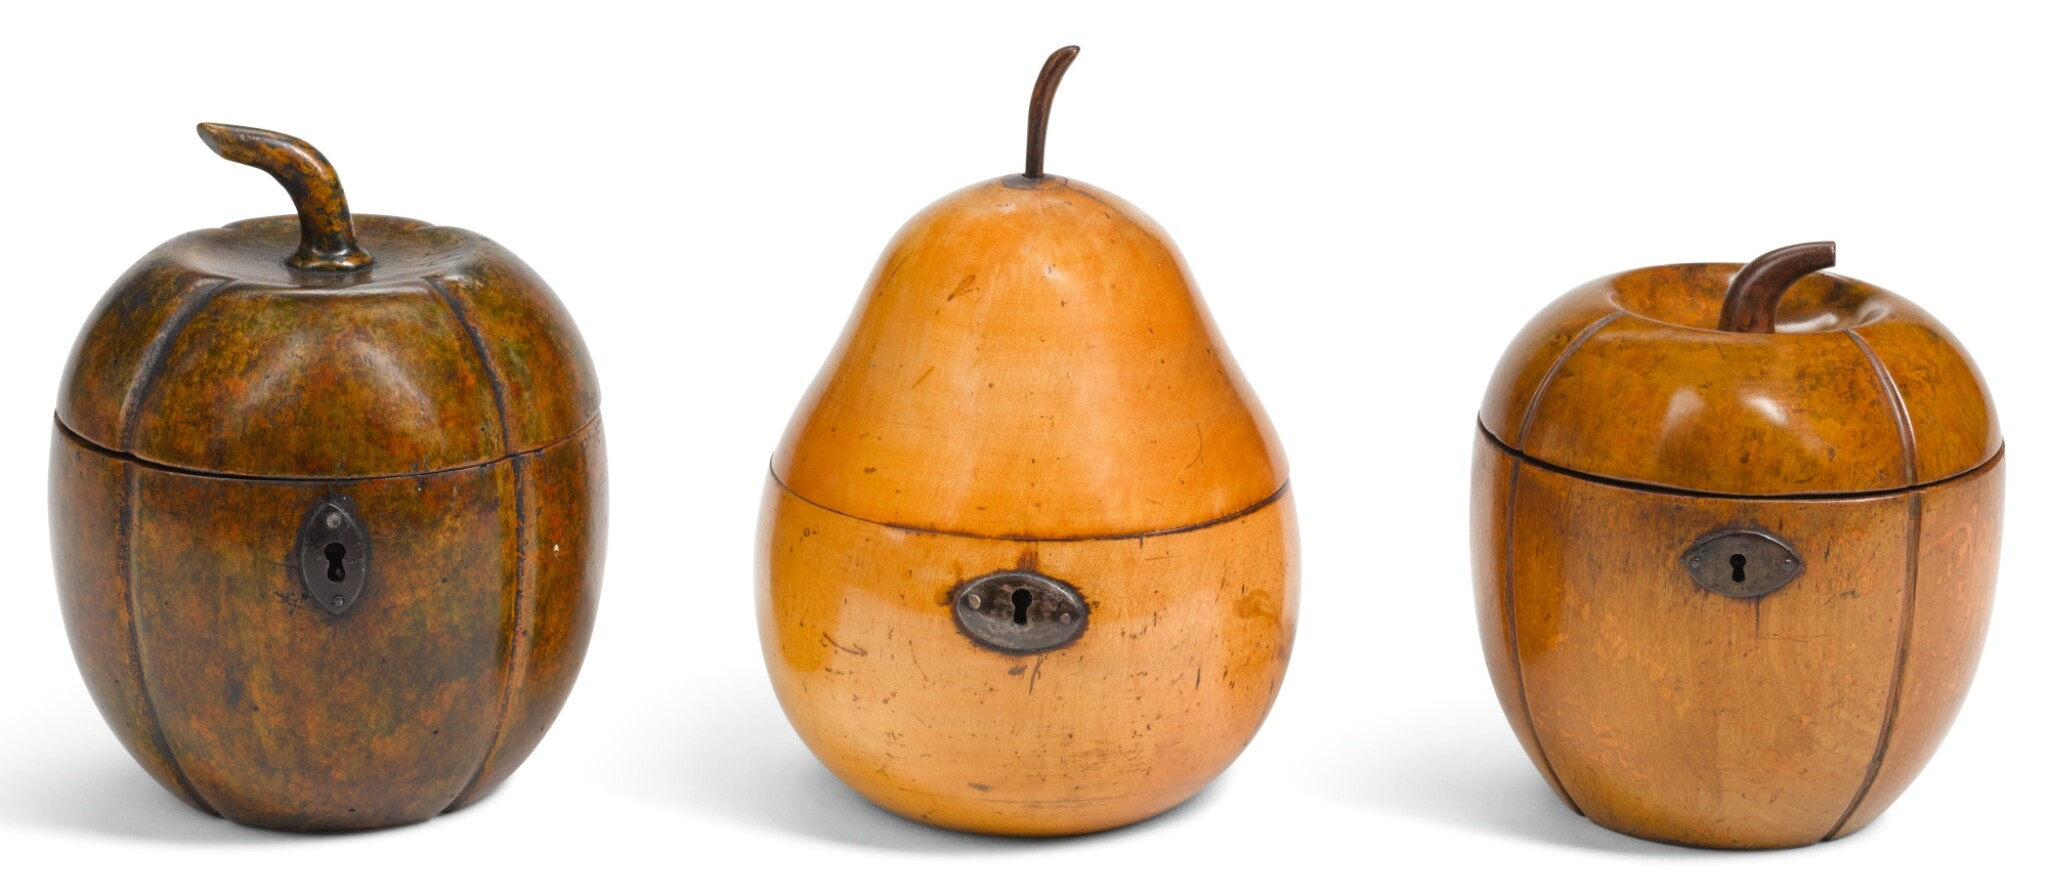 View full screen - View 1 of Lot 1. THREE GEORGE III FRUITWOOD TEA CADDIES, CIRCA 1800, ONE IN THE FORM OF A PEAR, TWO IN THE FORM OF A MELON.